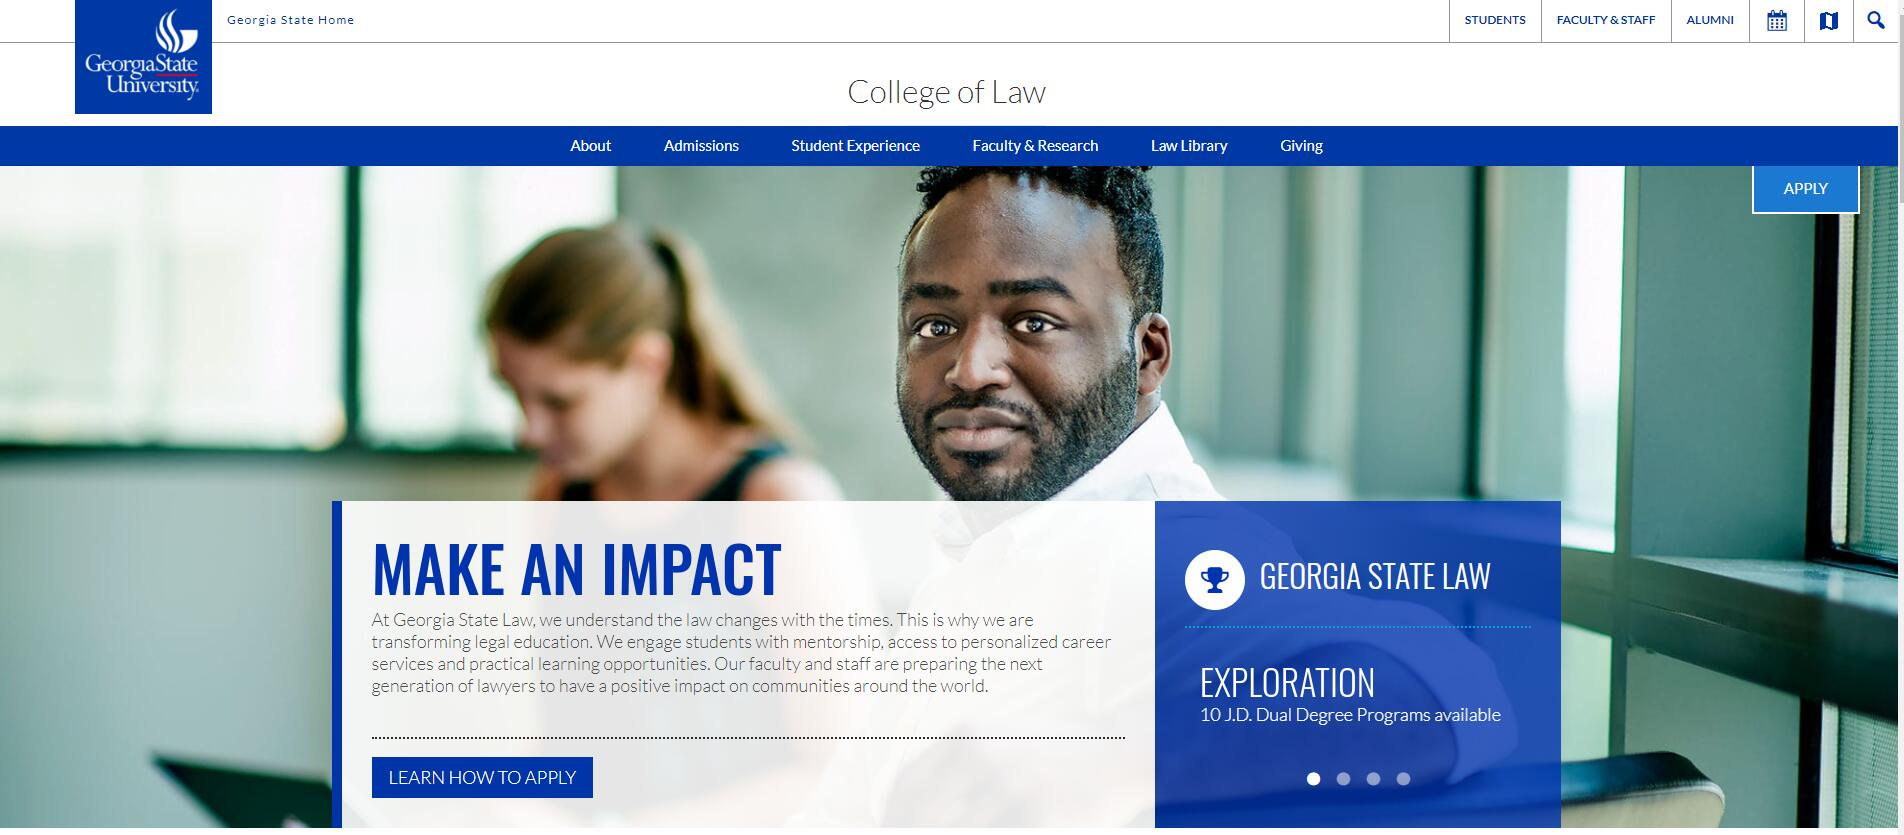 The College of Law at Georgia State University